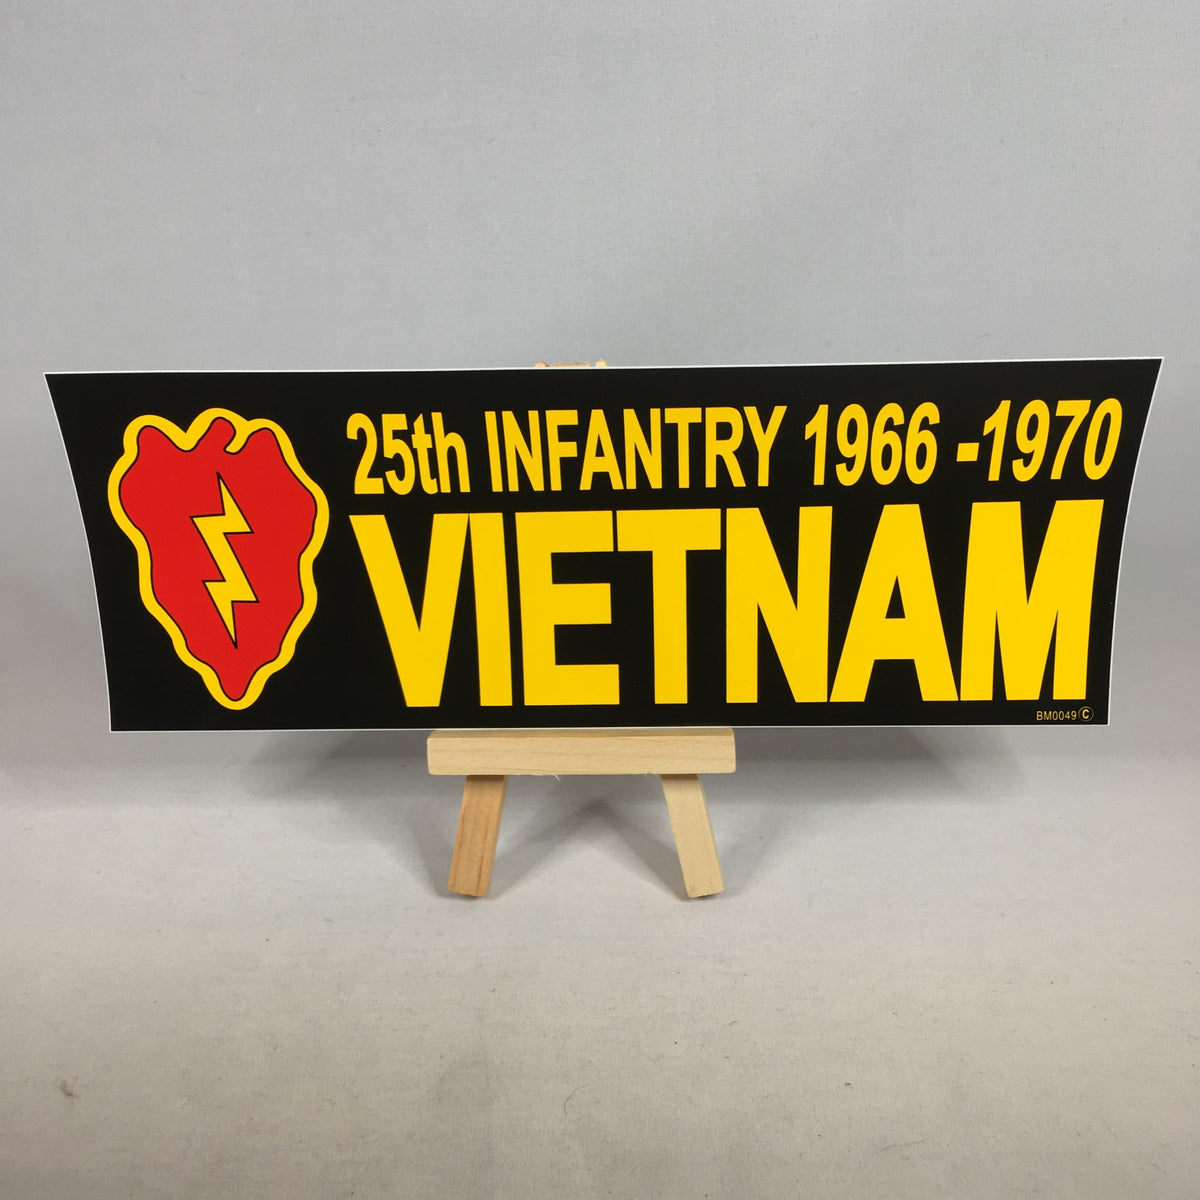 25th Infantry Division Vietnam Bumper Sticker